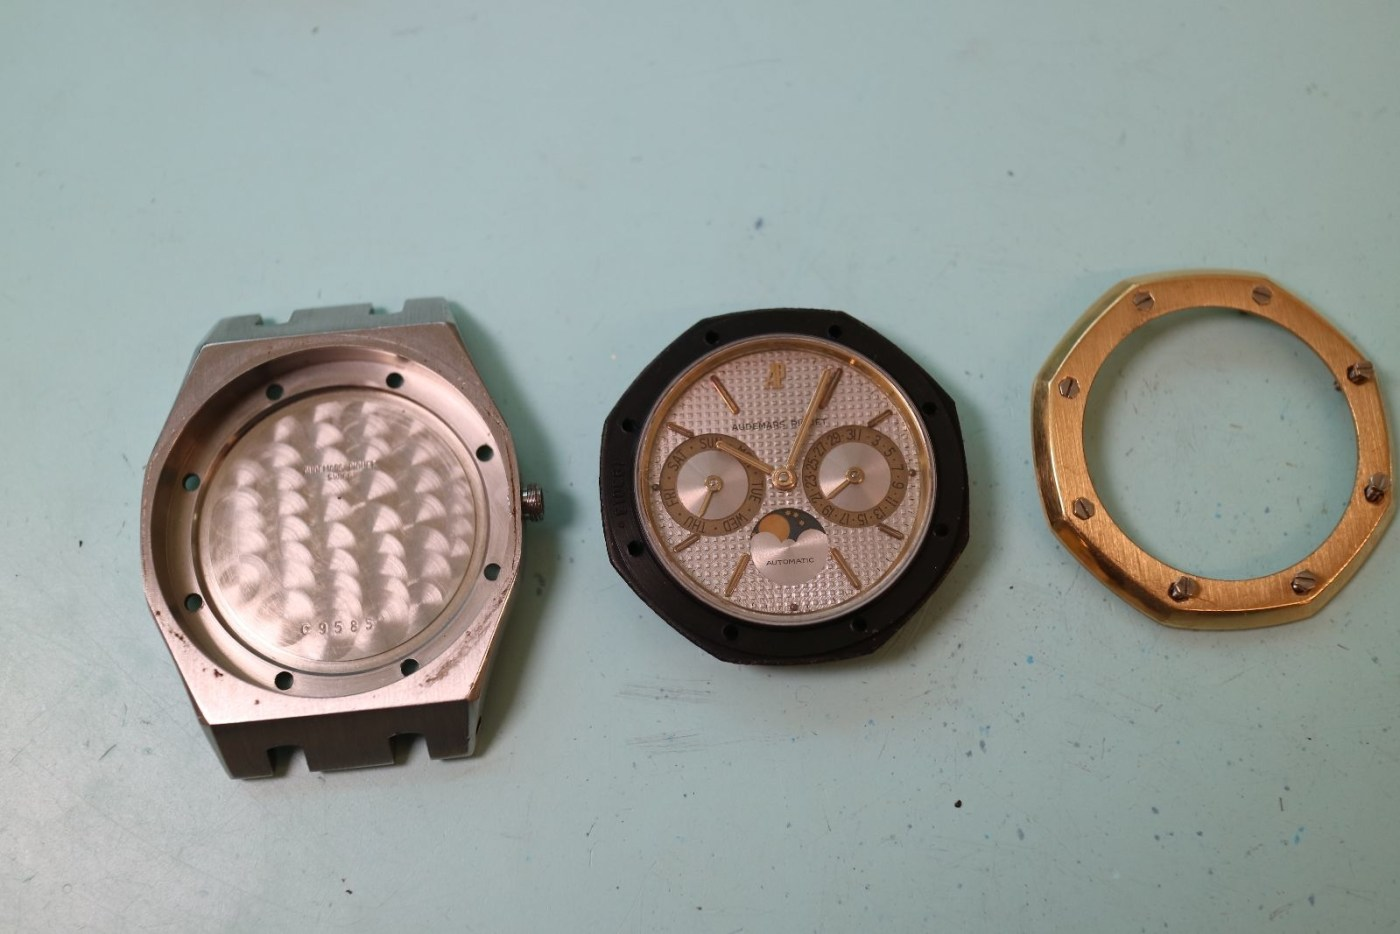 Back case, dial and movement, and bezel are separated prior to refinishing and service